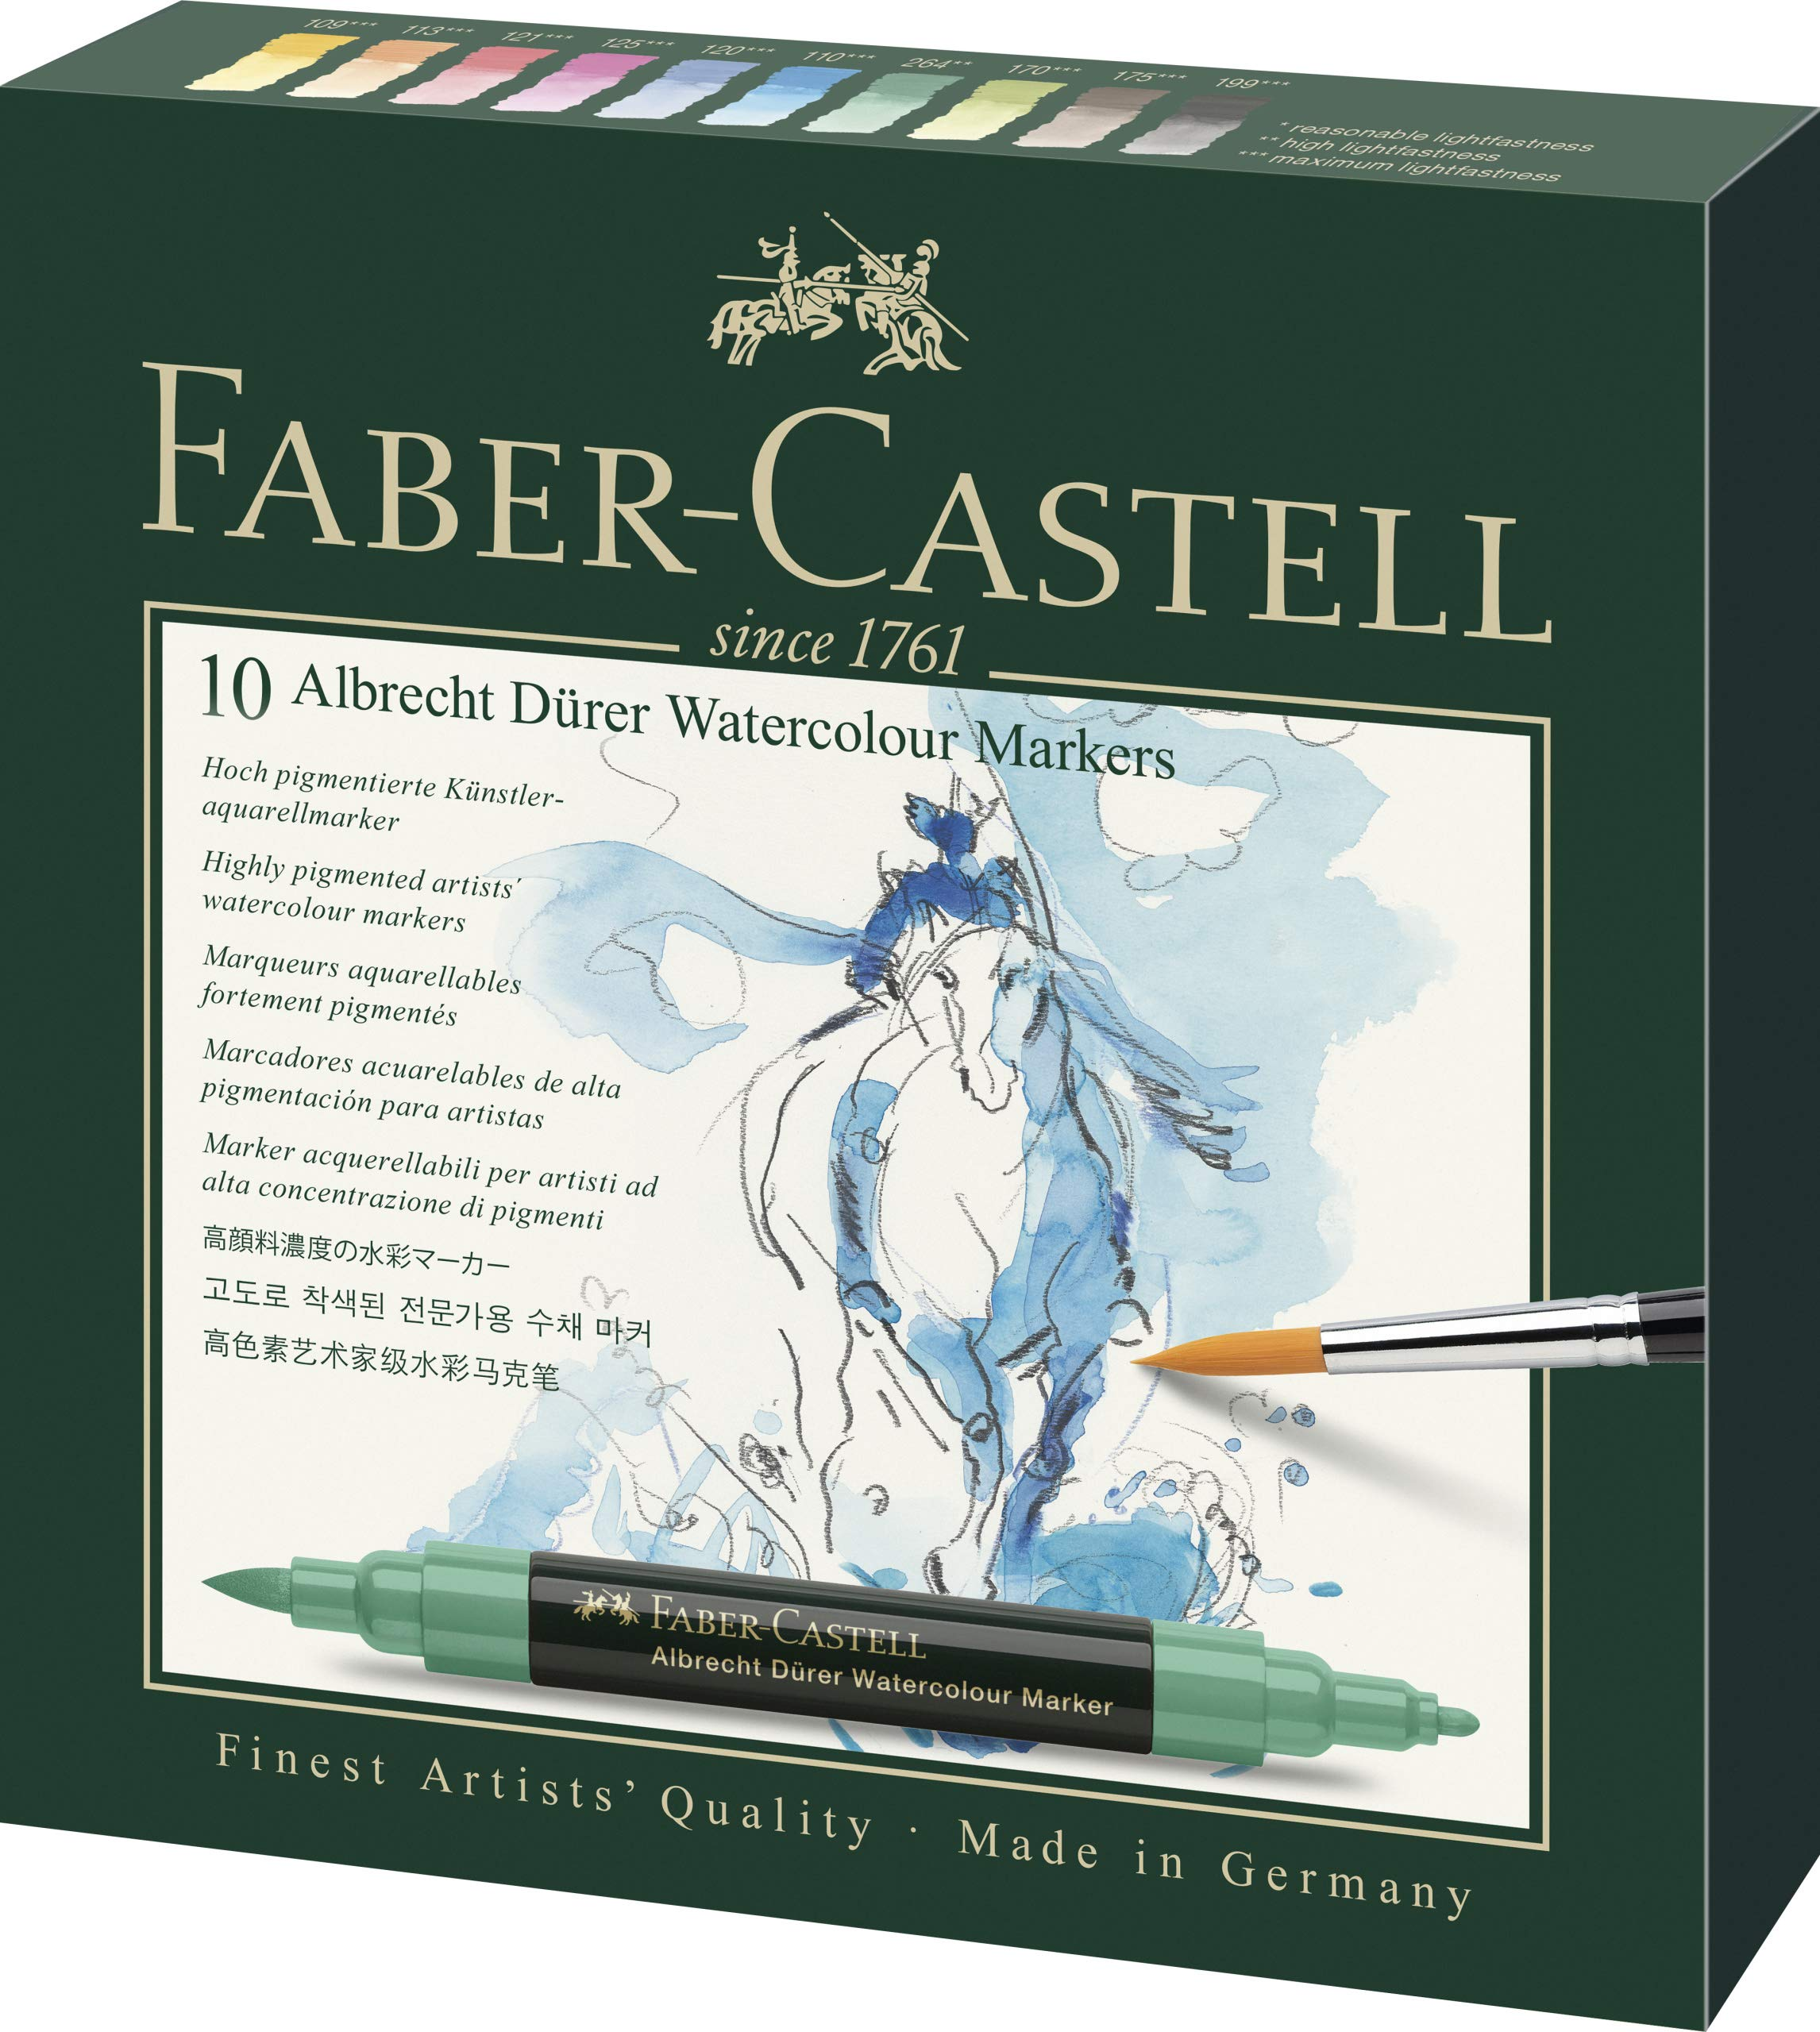 Faber-Castell Albrecht Durer Artists' Watercolor Markers - 10 Assorted Colors - Multipurpose Art Markers